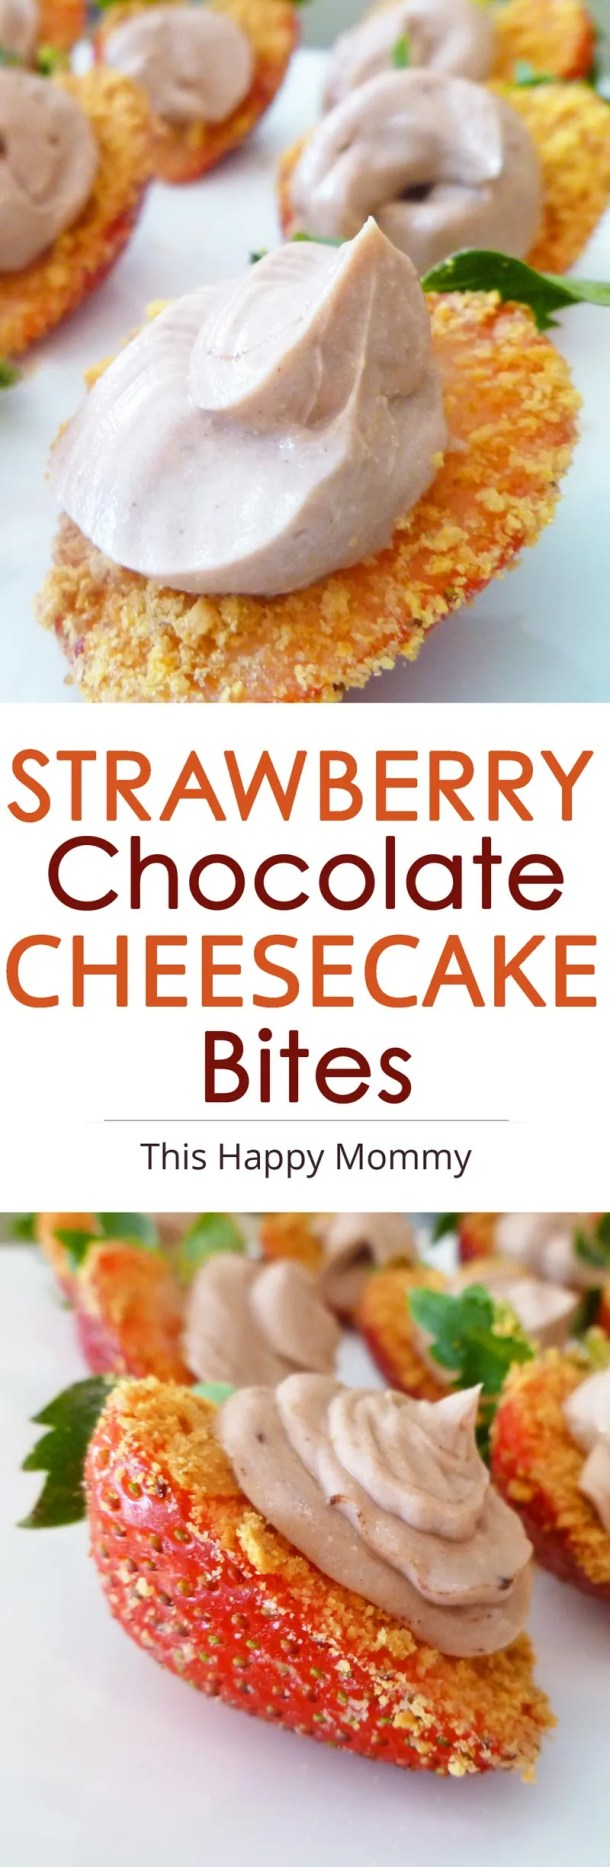 Strawberry Chocolate Cheesecake Bites -- The perfect summer dessert idea!! Strawberry bites covered with a graham cracker crust and a swirl of creamy chocolate cheesecake. #healthyrecipe #easydessert #minicheesecake | thishappymommy.com